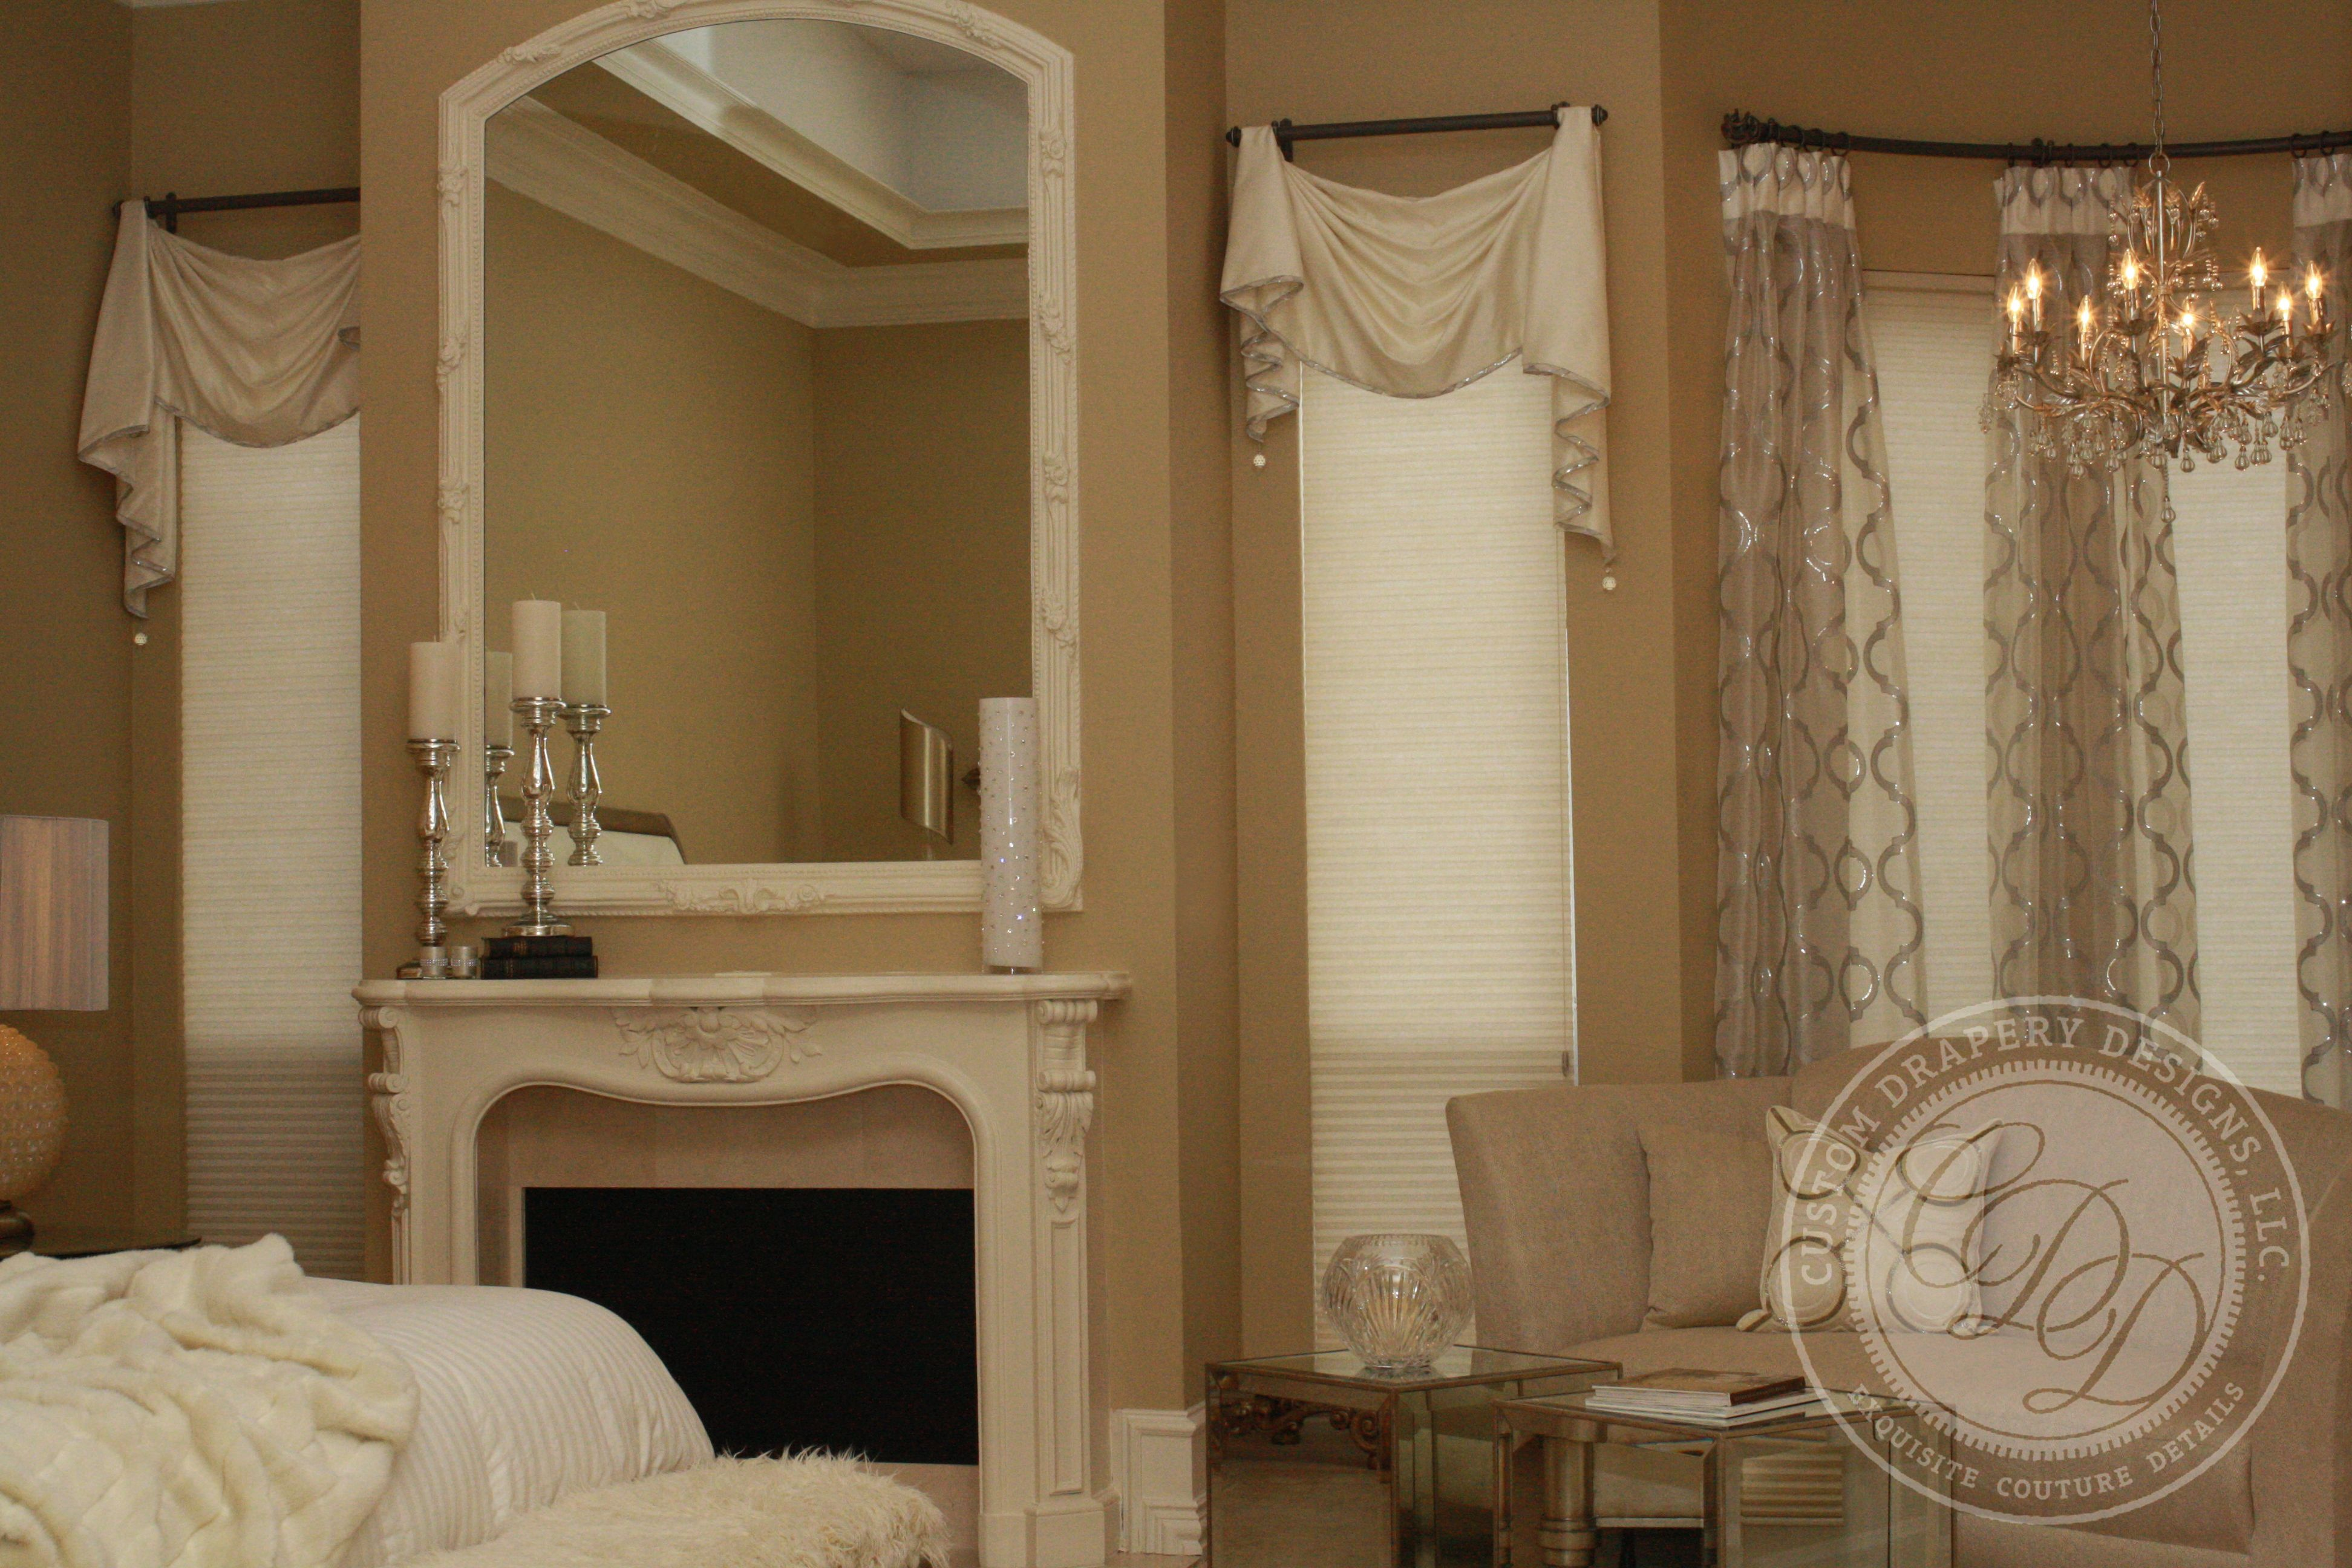 Custom Drapery Designs, LLC. - Drapery  Drapes  Pinterest